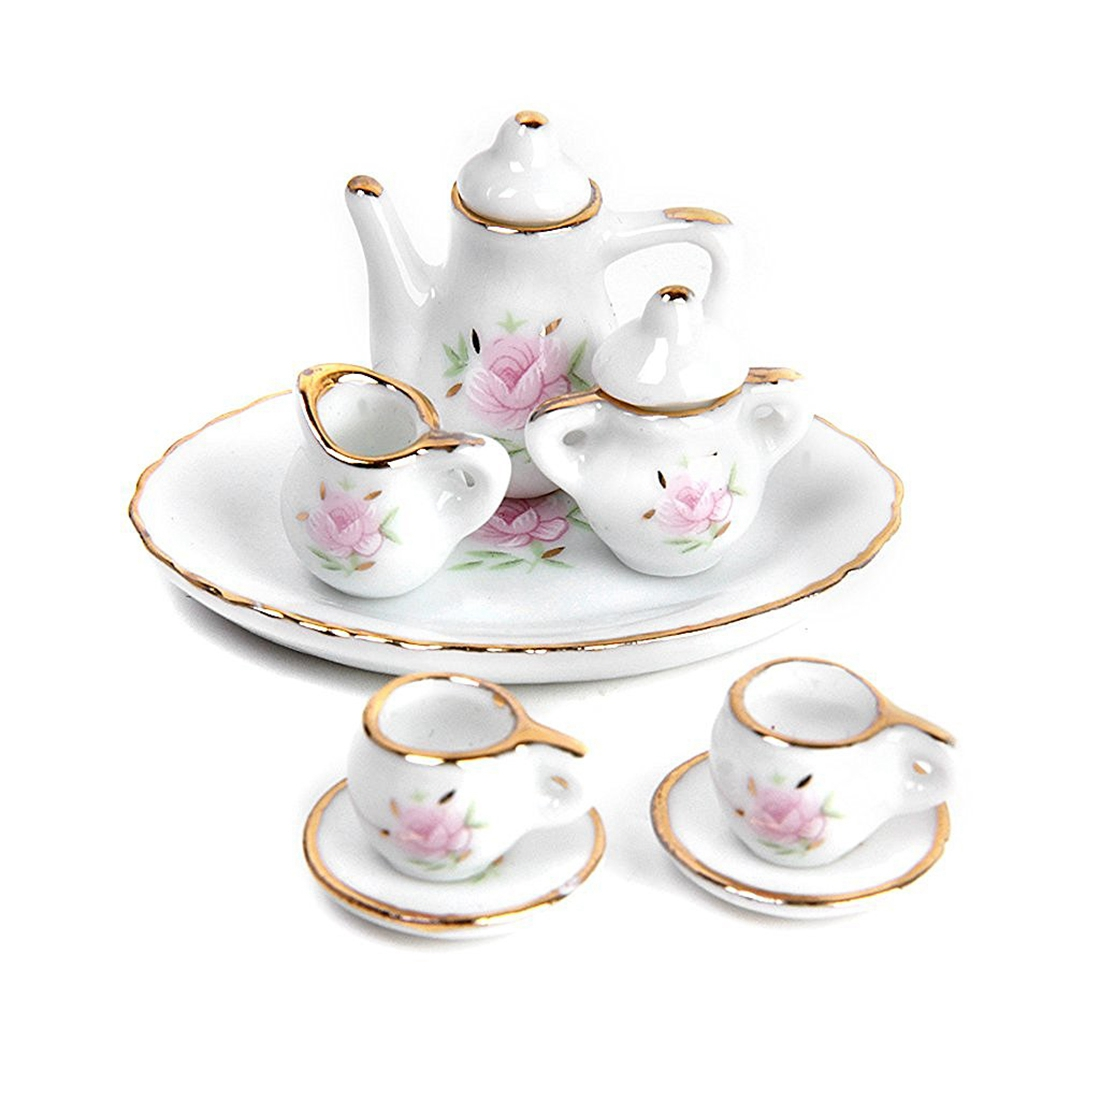 Dollhouse Miniature Restaurants Goods Porcelain Tea Set Plate Cup Plate Flower Print Pure White And Translucent Furniture Toys Strict 8 Pcs Pretend Play